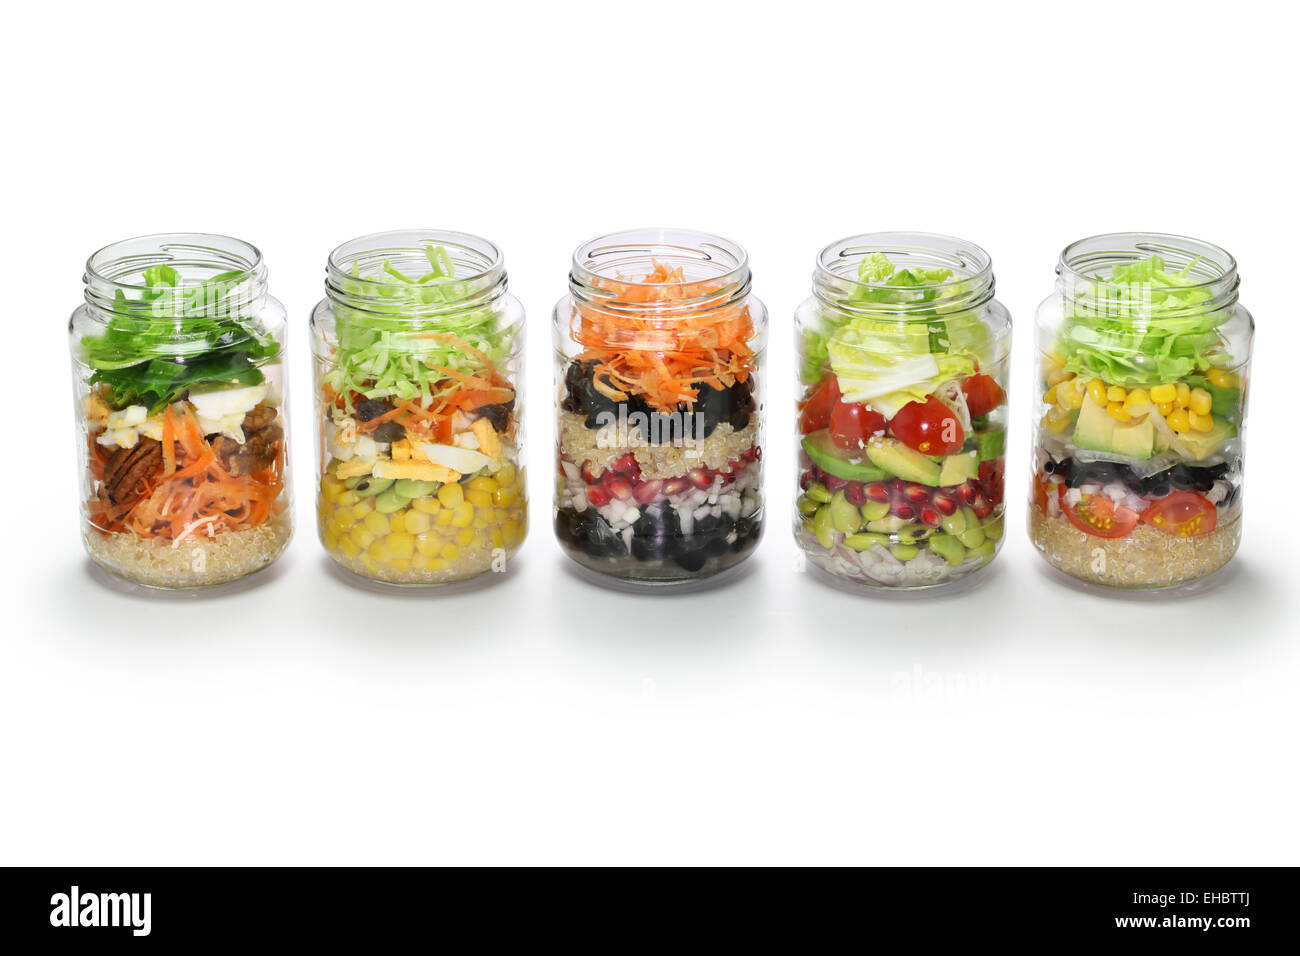 homemade vegetable salad in glass jar on white background - Stock Image